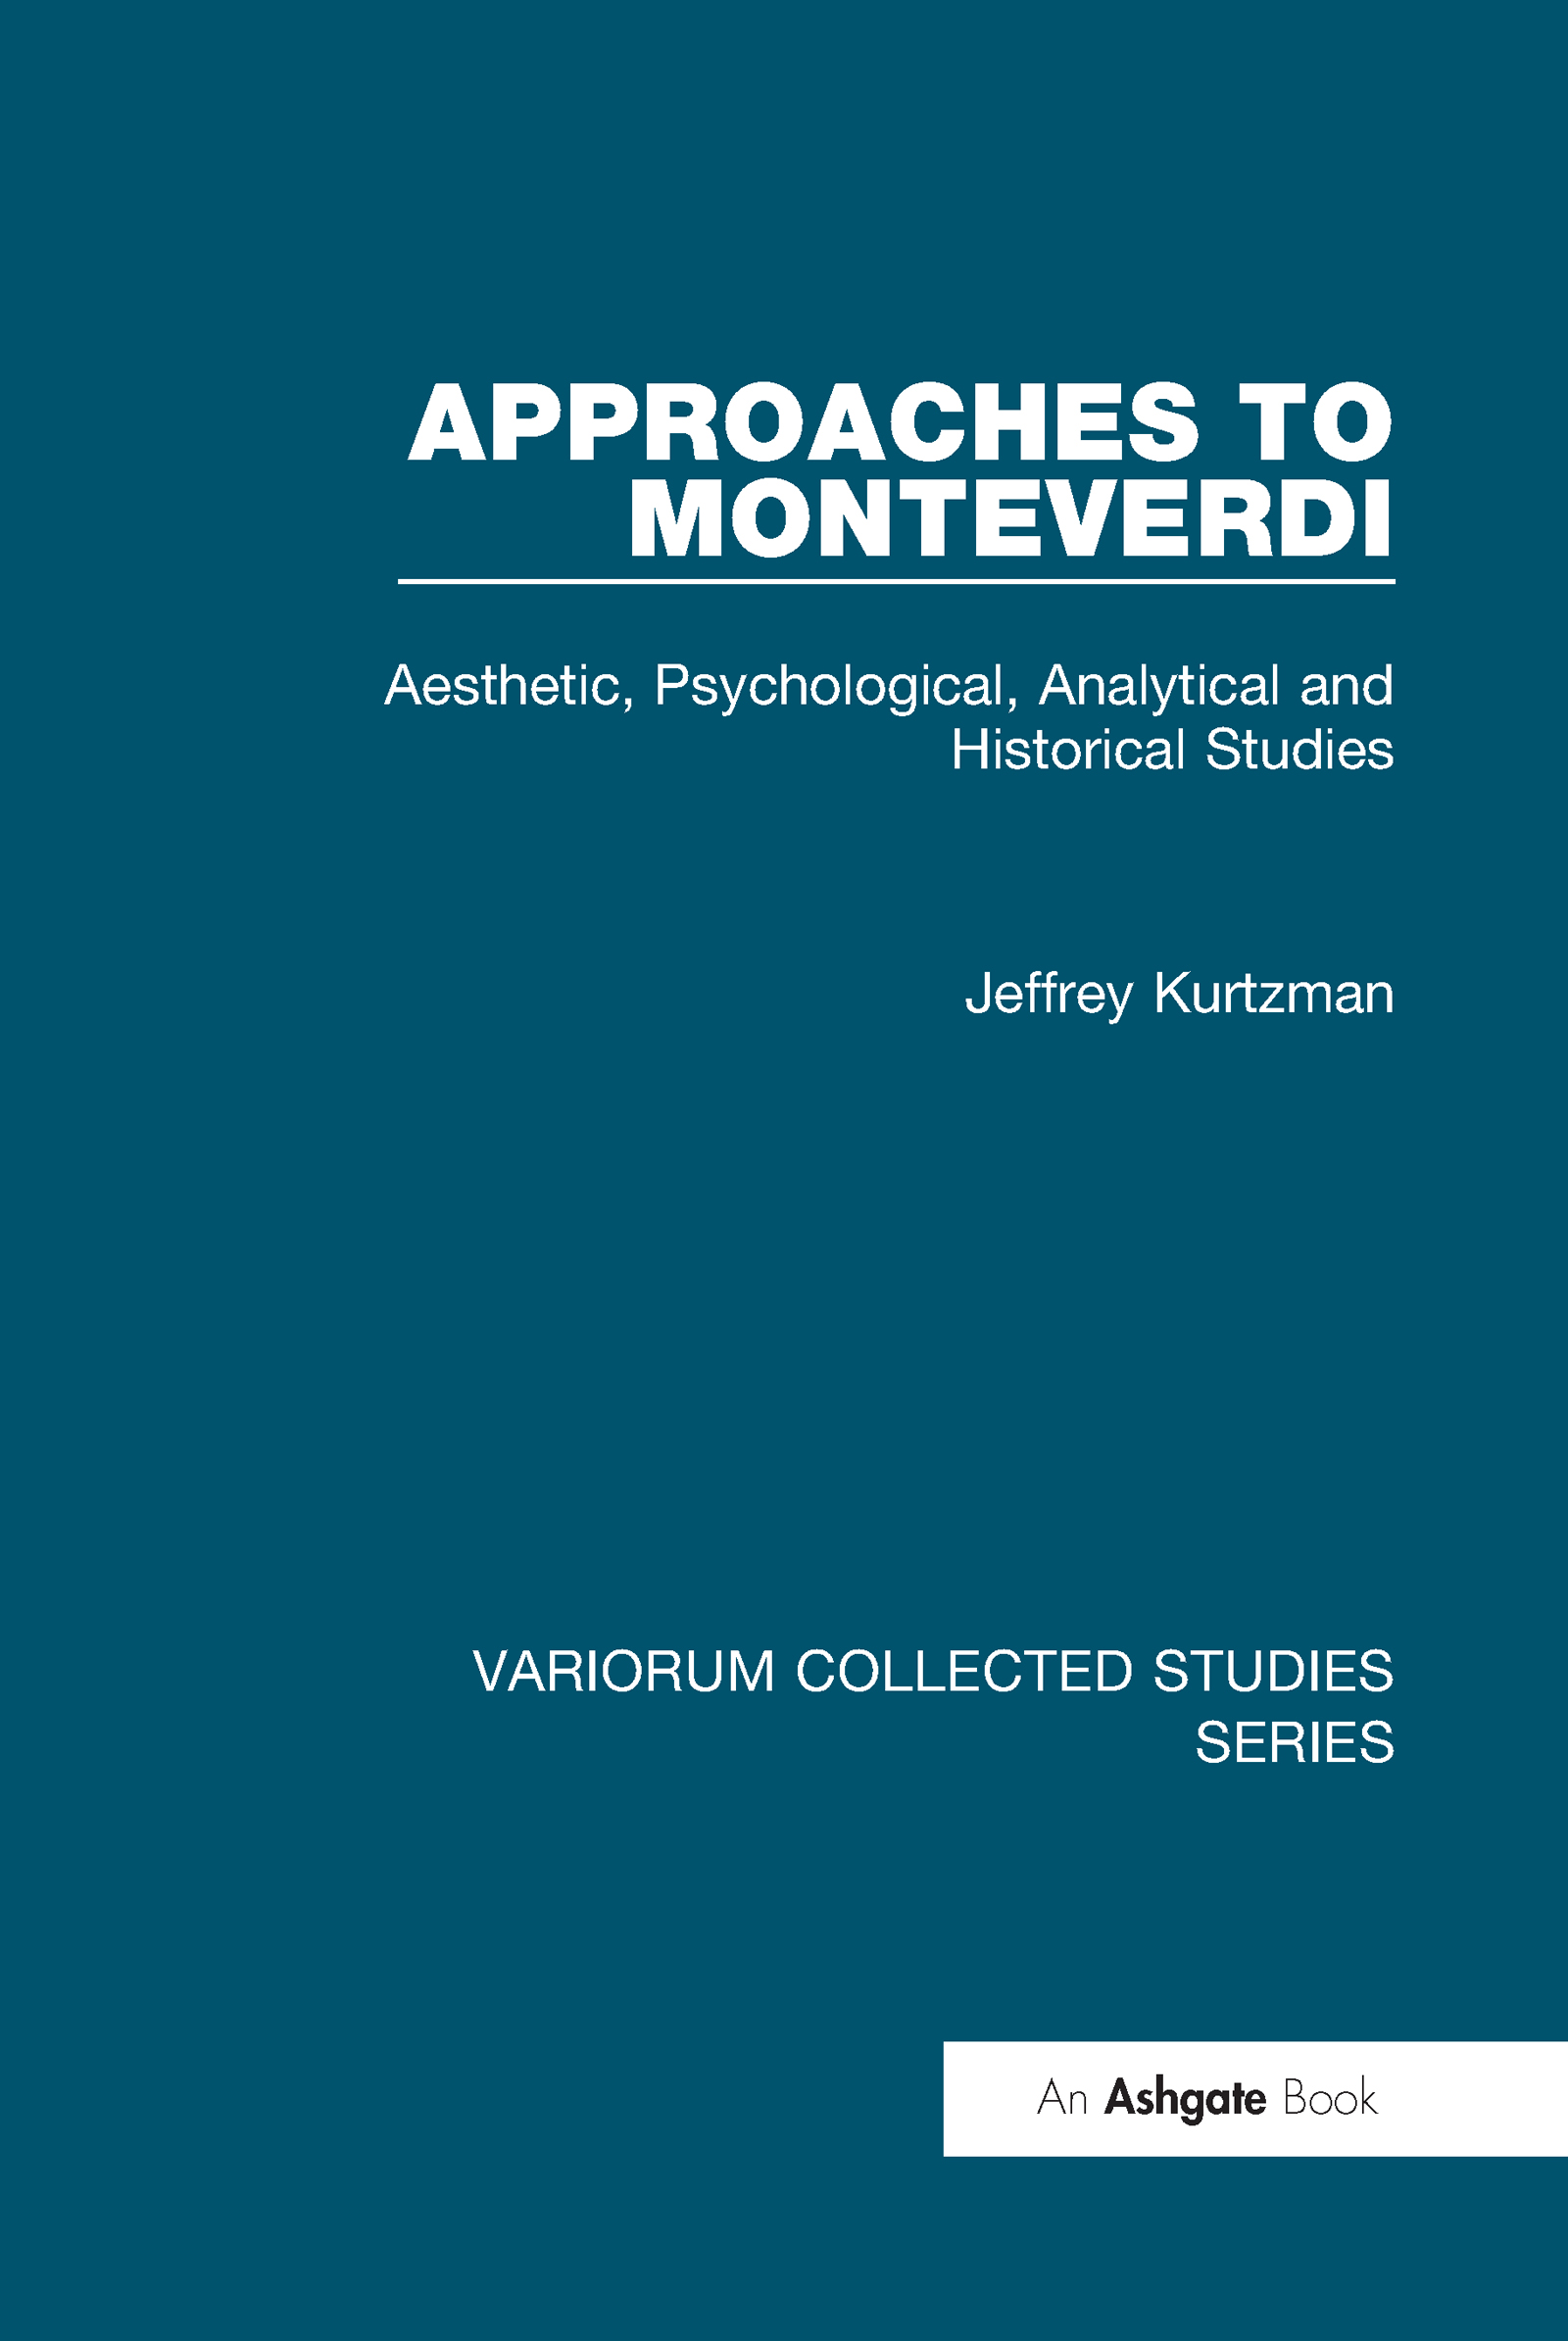 Approaches to Monteverdi